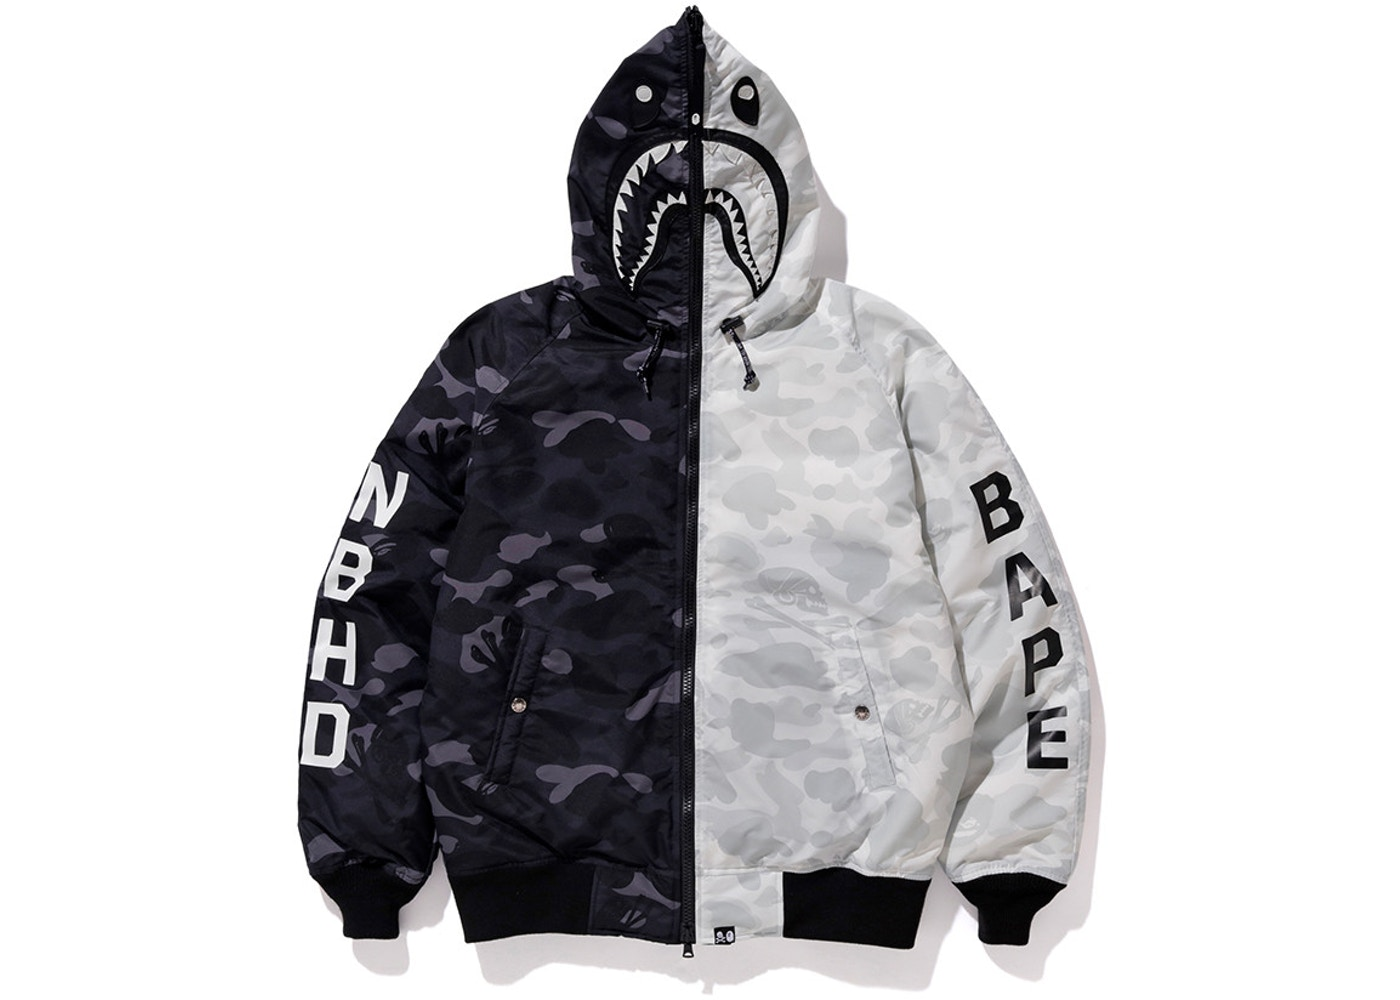 26835bc11458 BAPE x Neighborhood Down Shark Jacket Black White - FW18